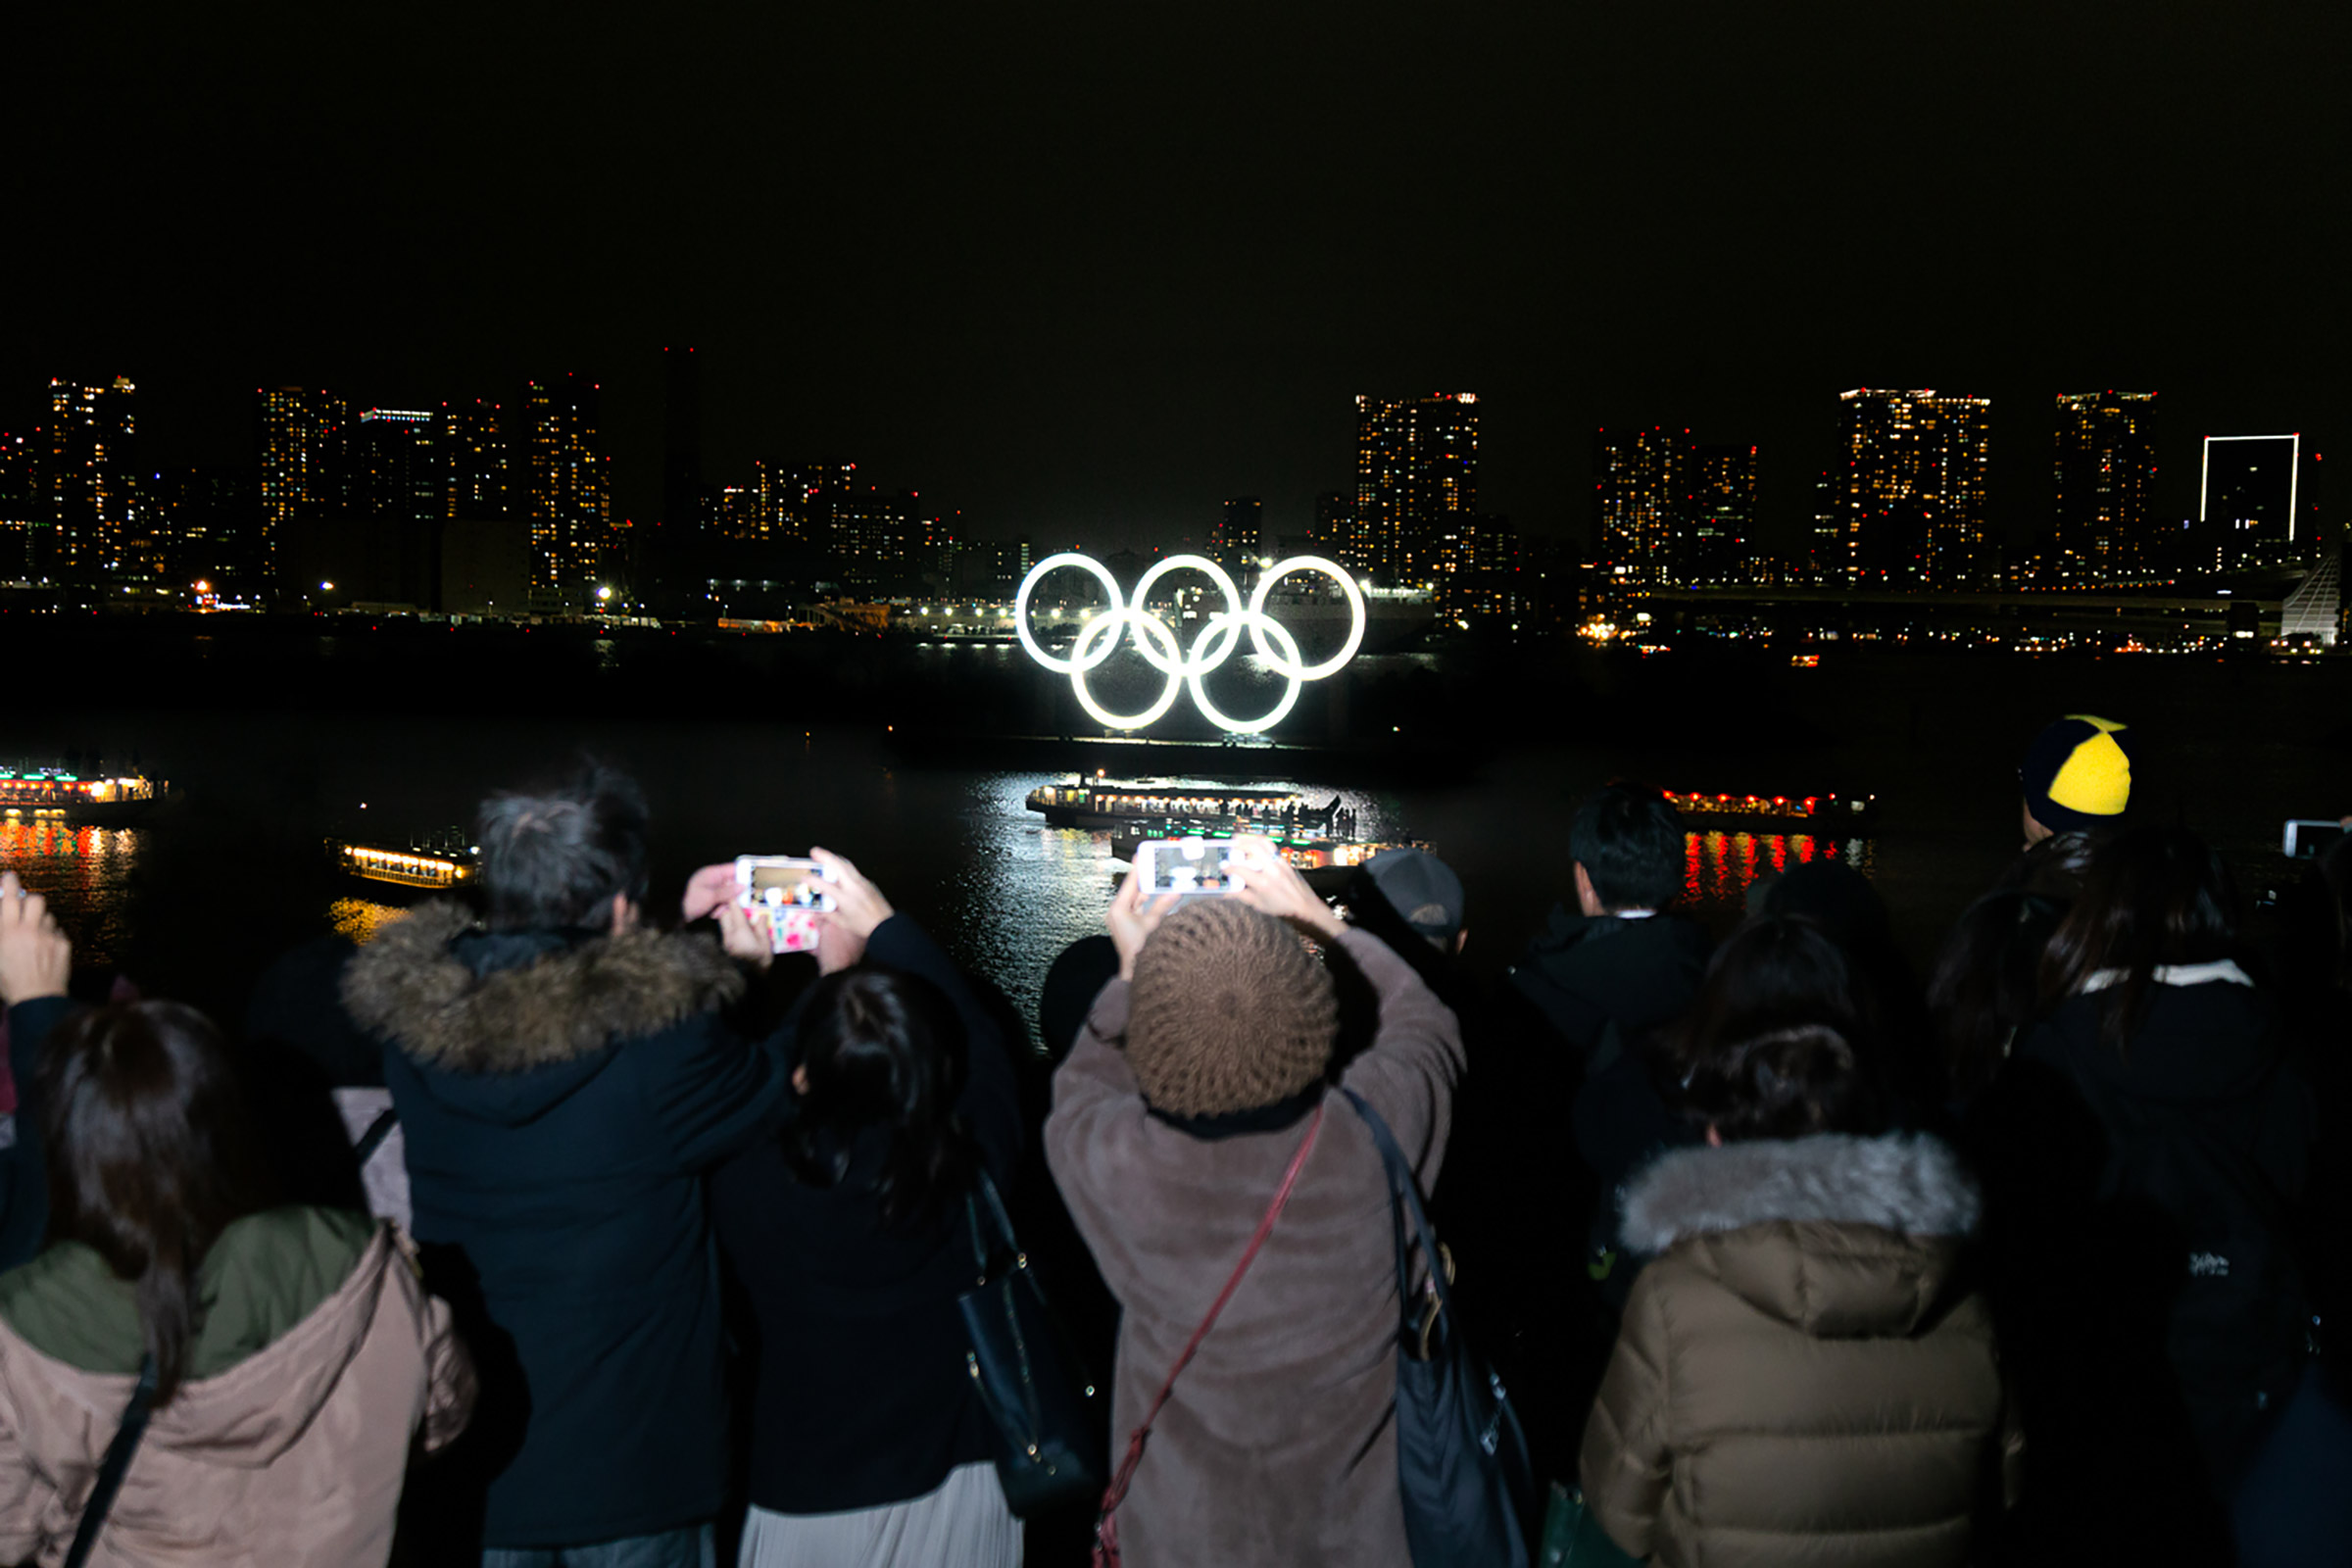 The Olympic logo floats in TokyoBay in December 2019, before the pandemic struck